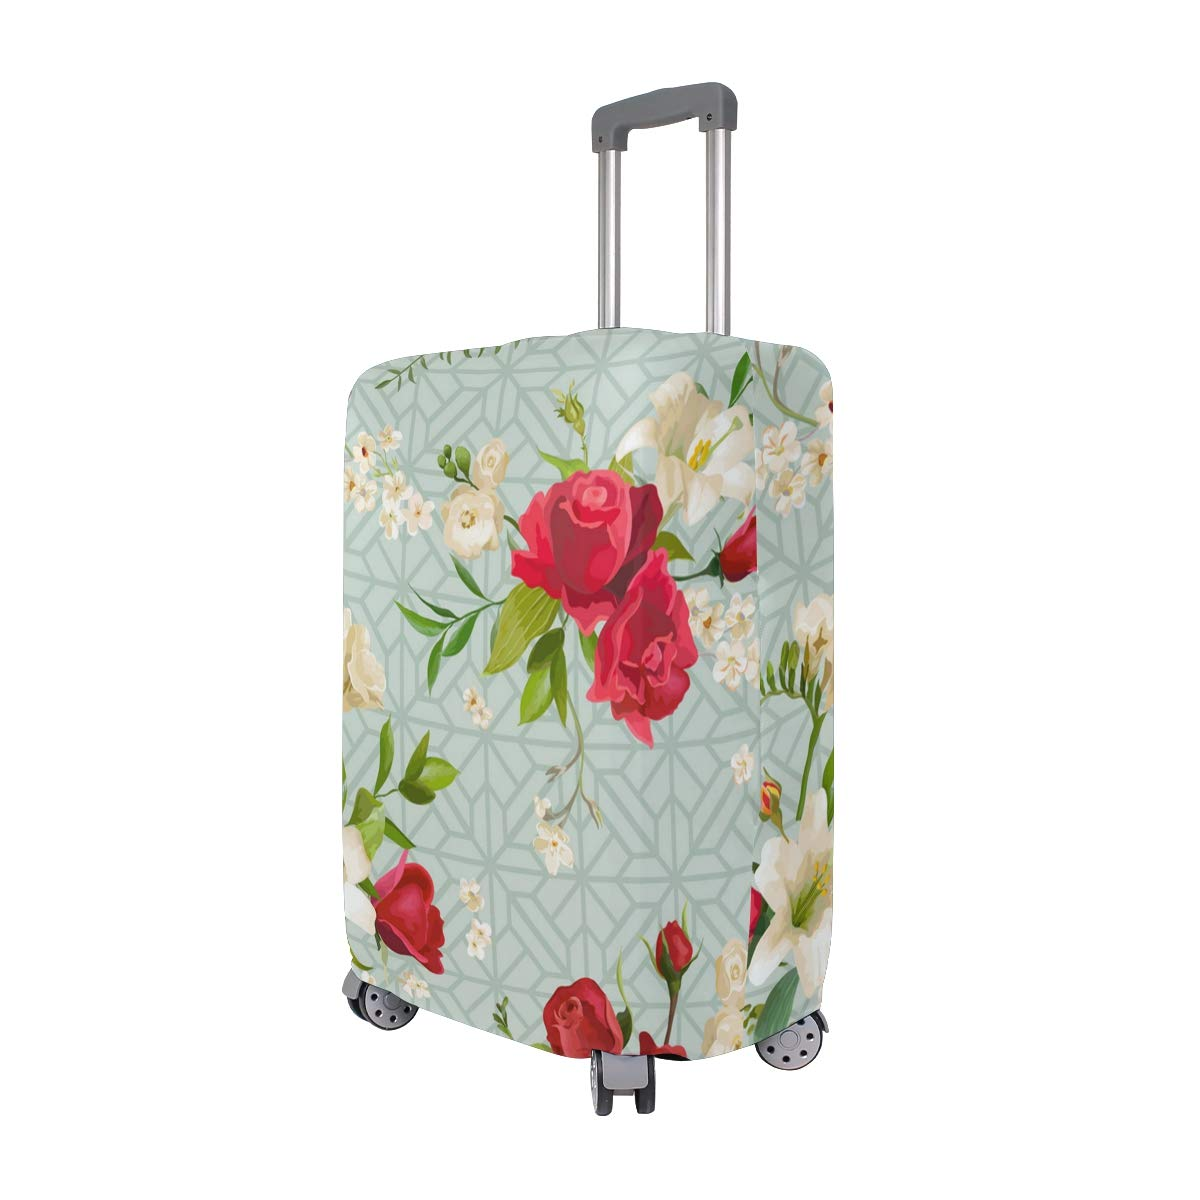 Open Up And Fight Traveler Lightweight Rotating Luggage Protector Case Can Carry With You Can Expand Travel Bag Trolley Rolling Luggage Protector Case